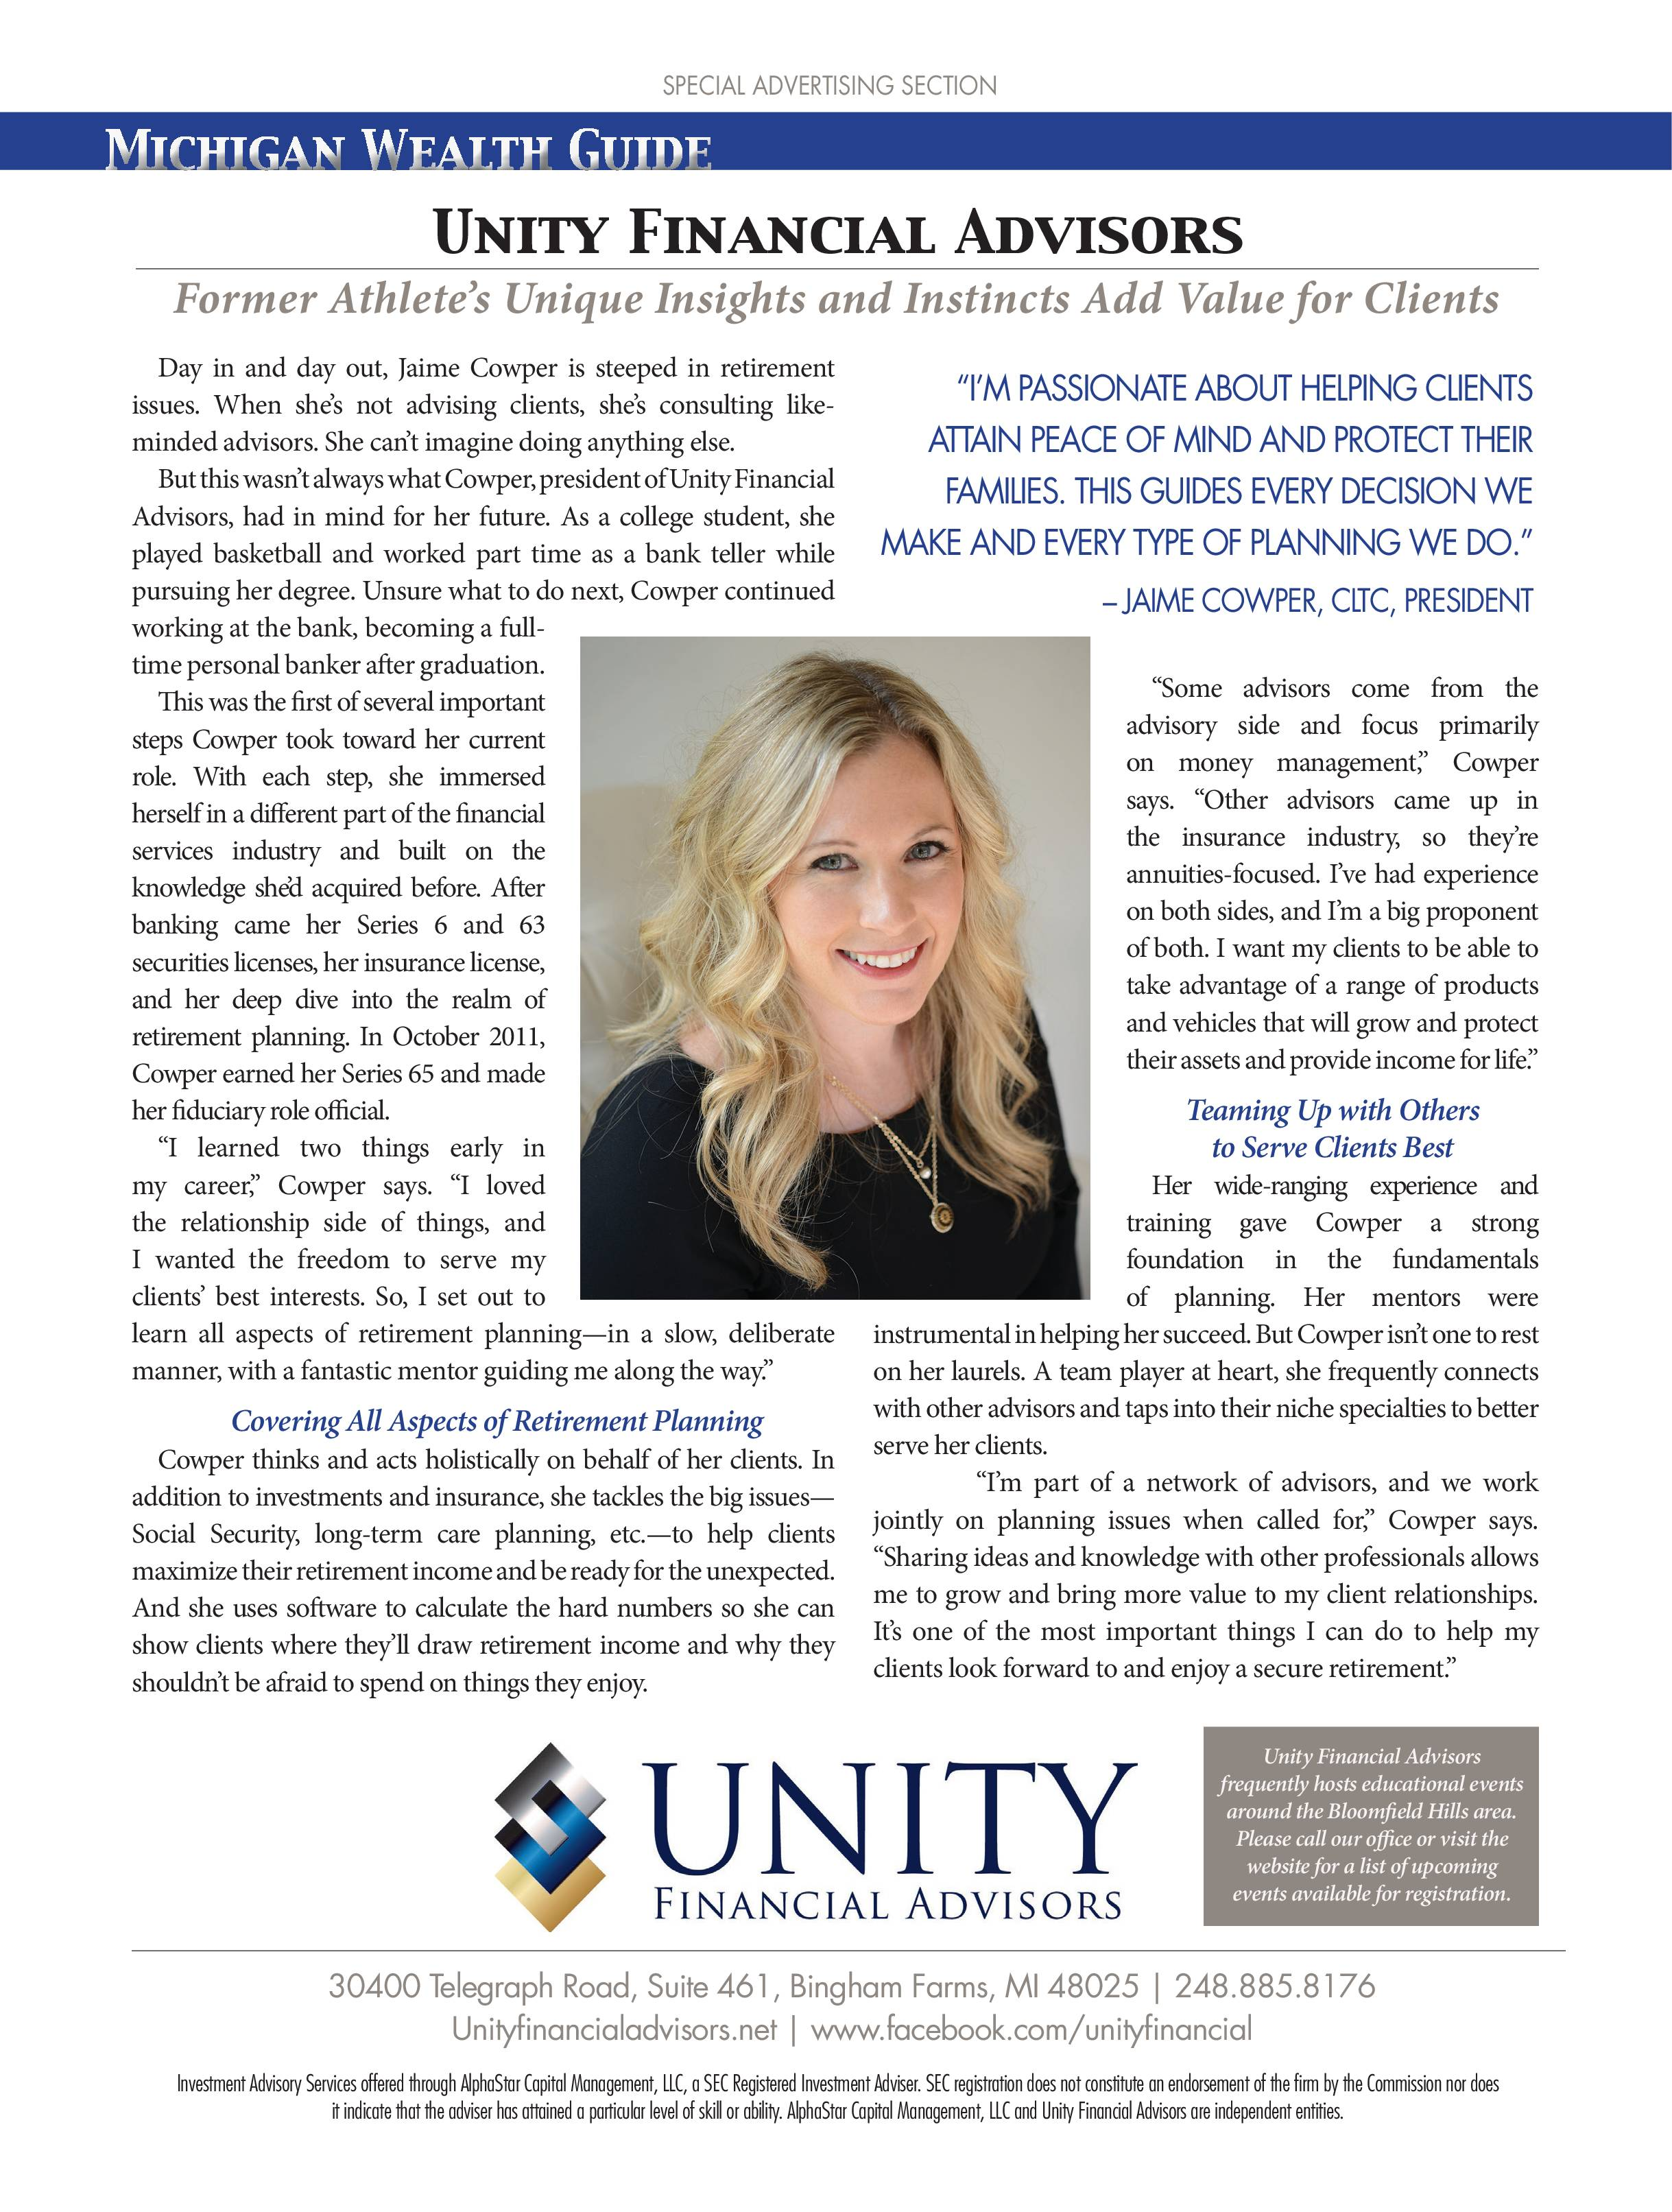 Unity Financial Advisors image 2